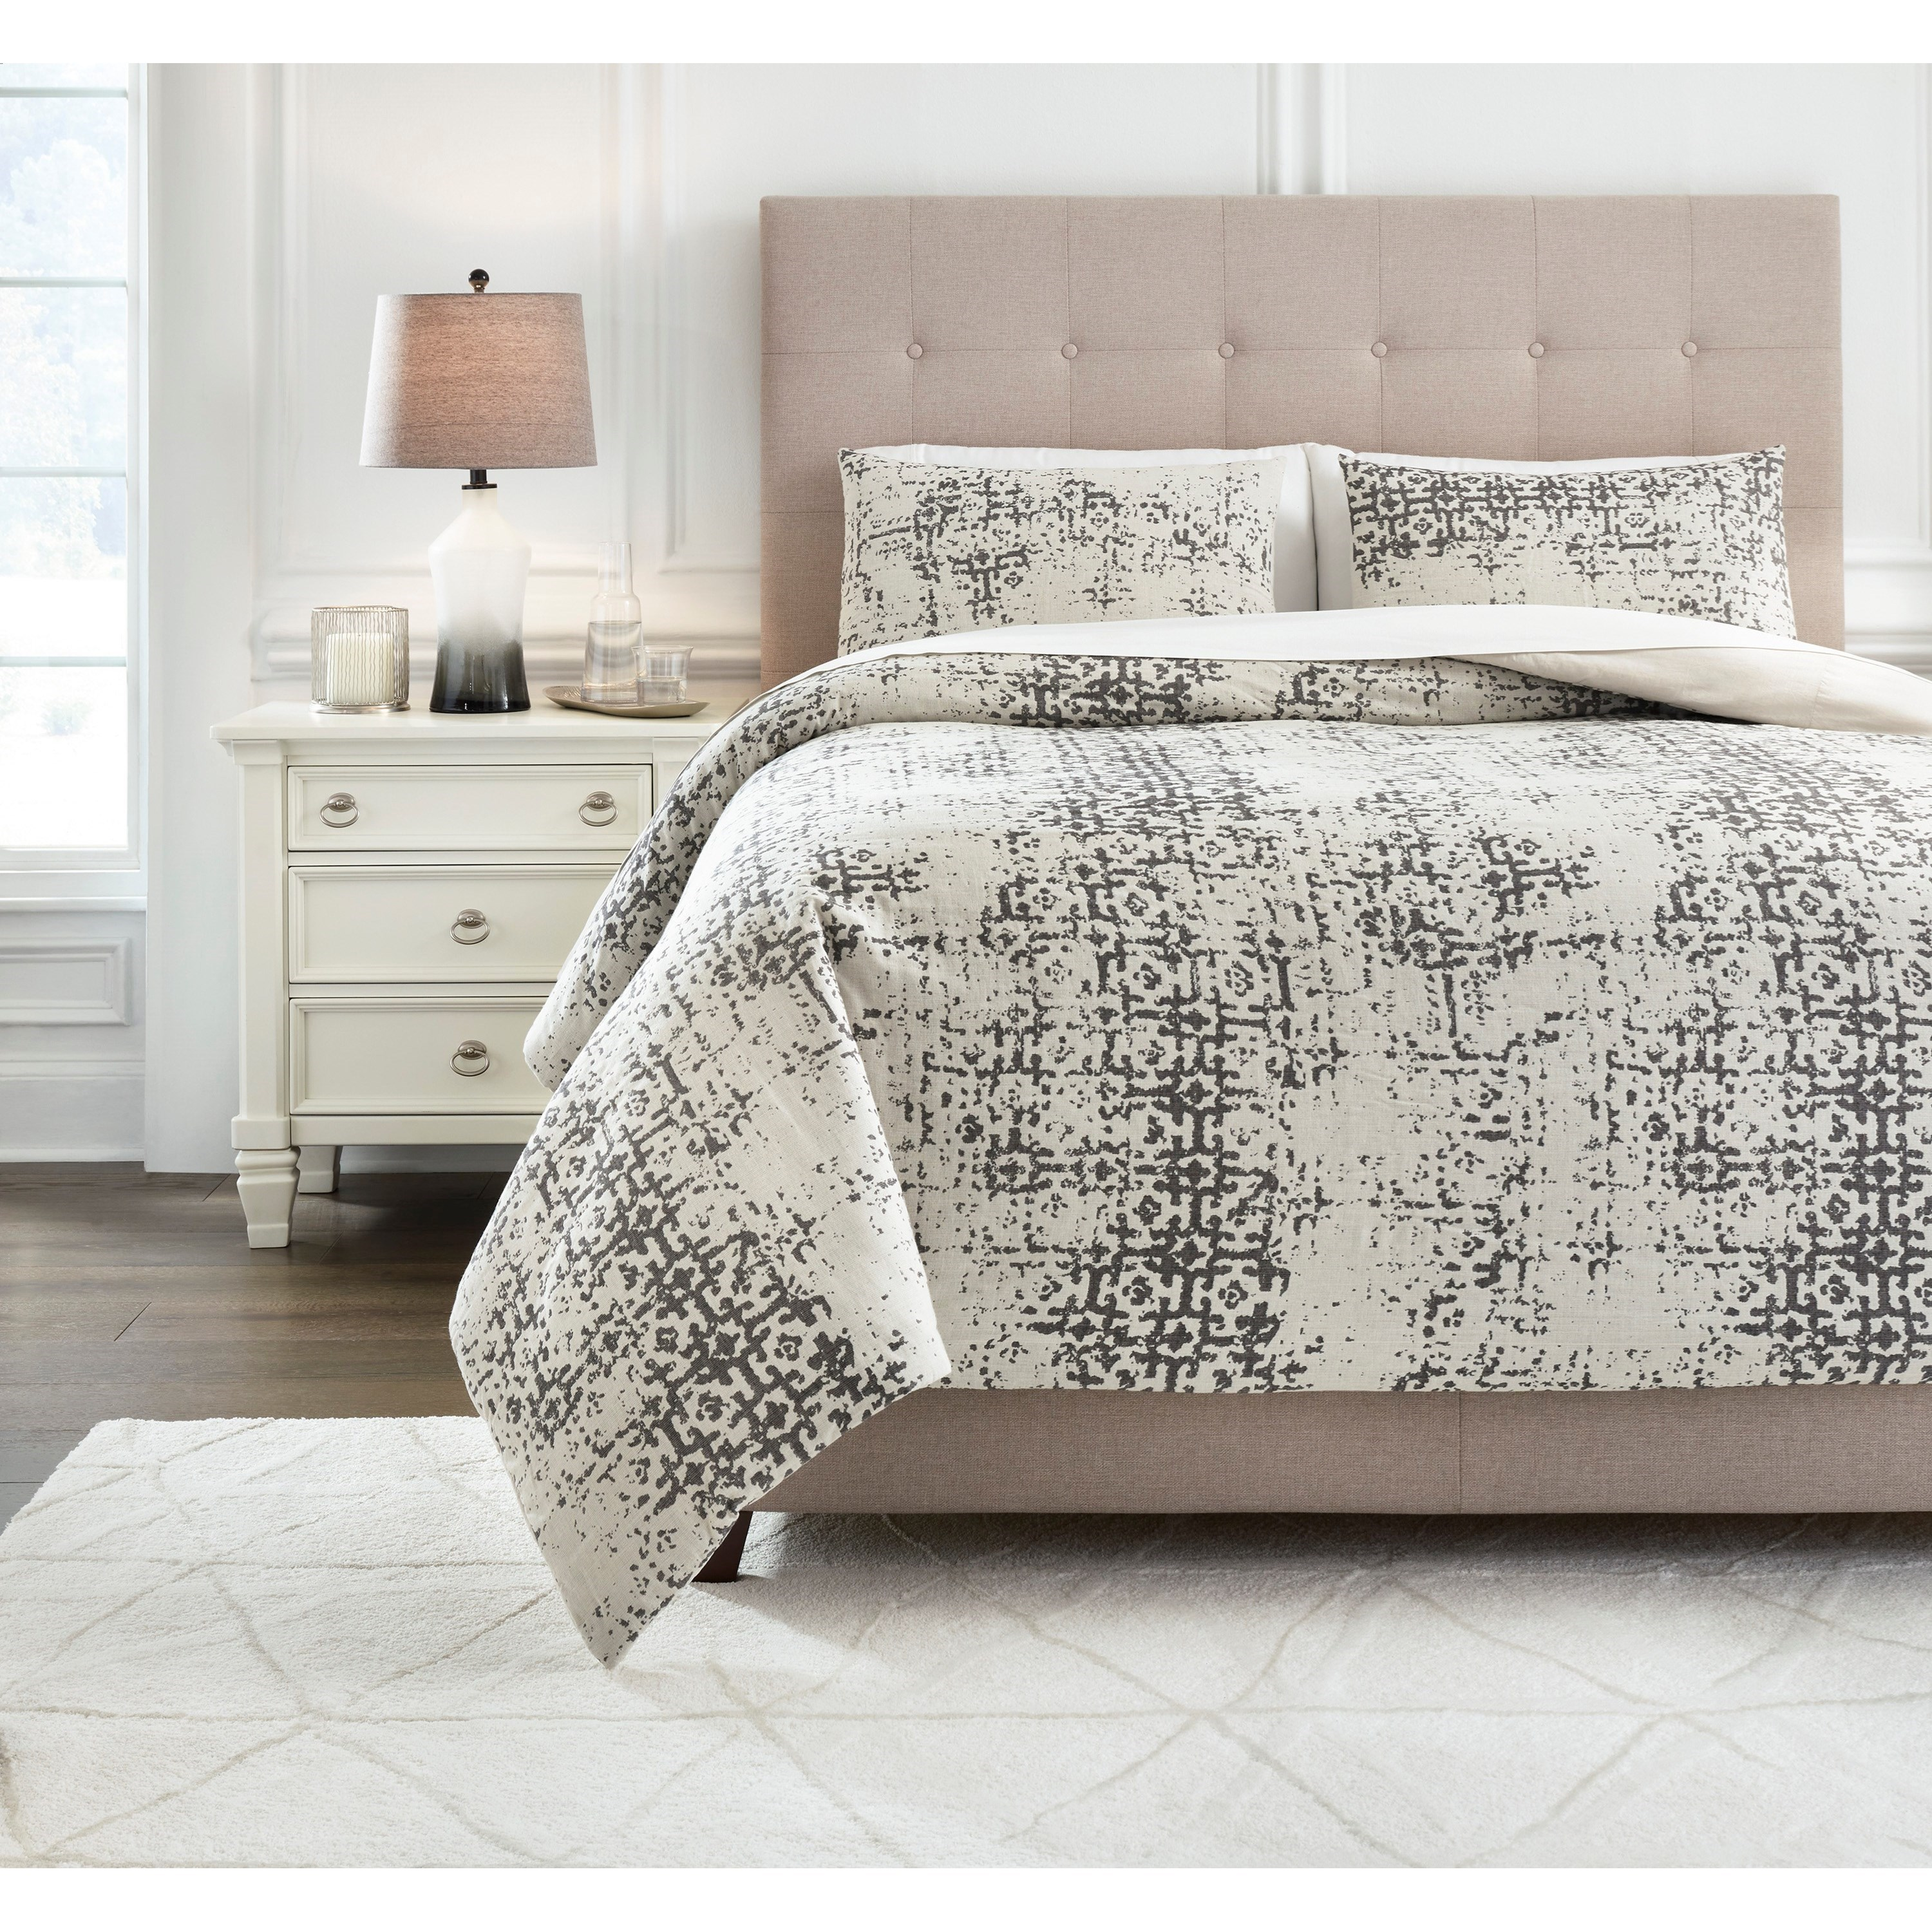 Bedding Sets King Addey Bone/Charcoal Comforter Set by Signature Design by Ashley at Household Furniture